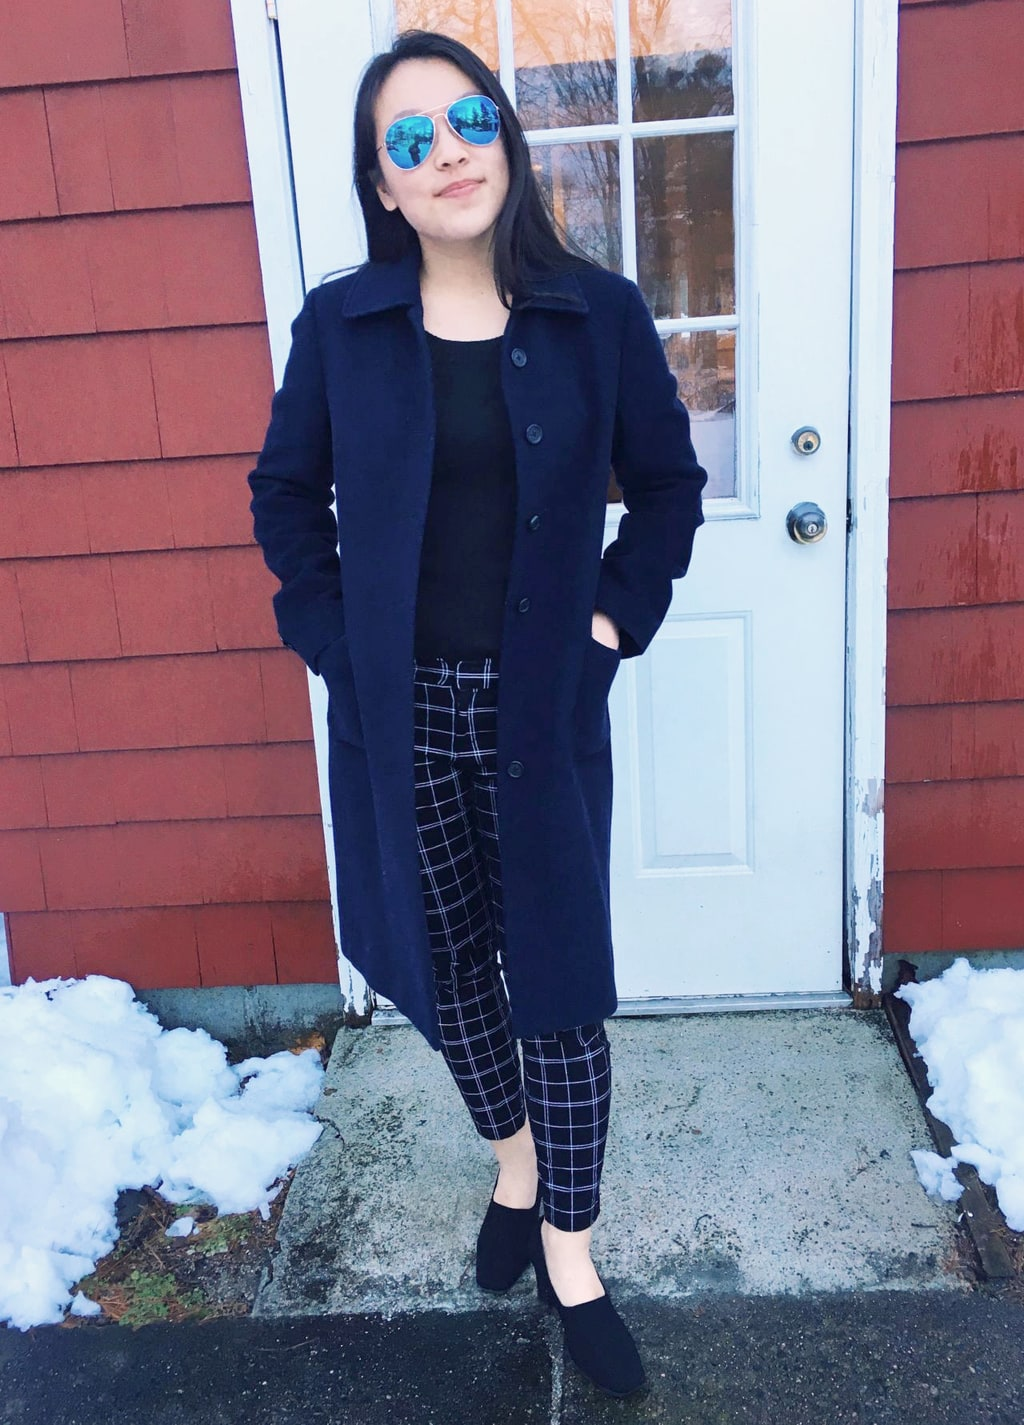 UMass Amherst fashion: Yan Ni sports a black sweater and mid-rise plaid skinny professional pants. She tops off her look with a long navy peacoat and black chunky-heeled shoes.